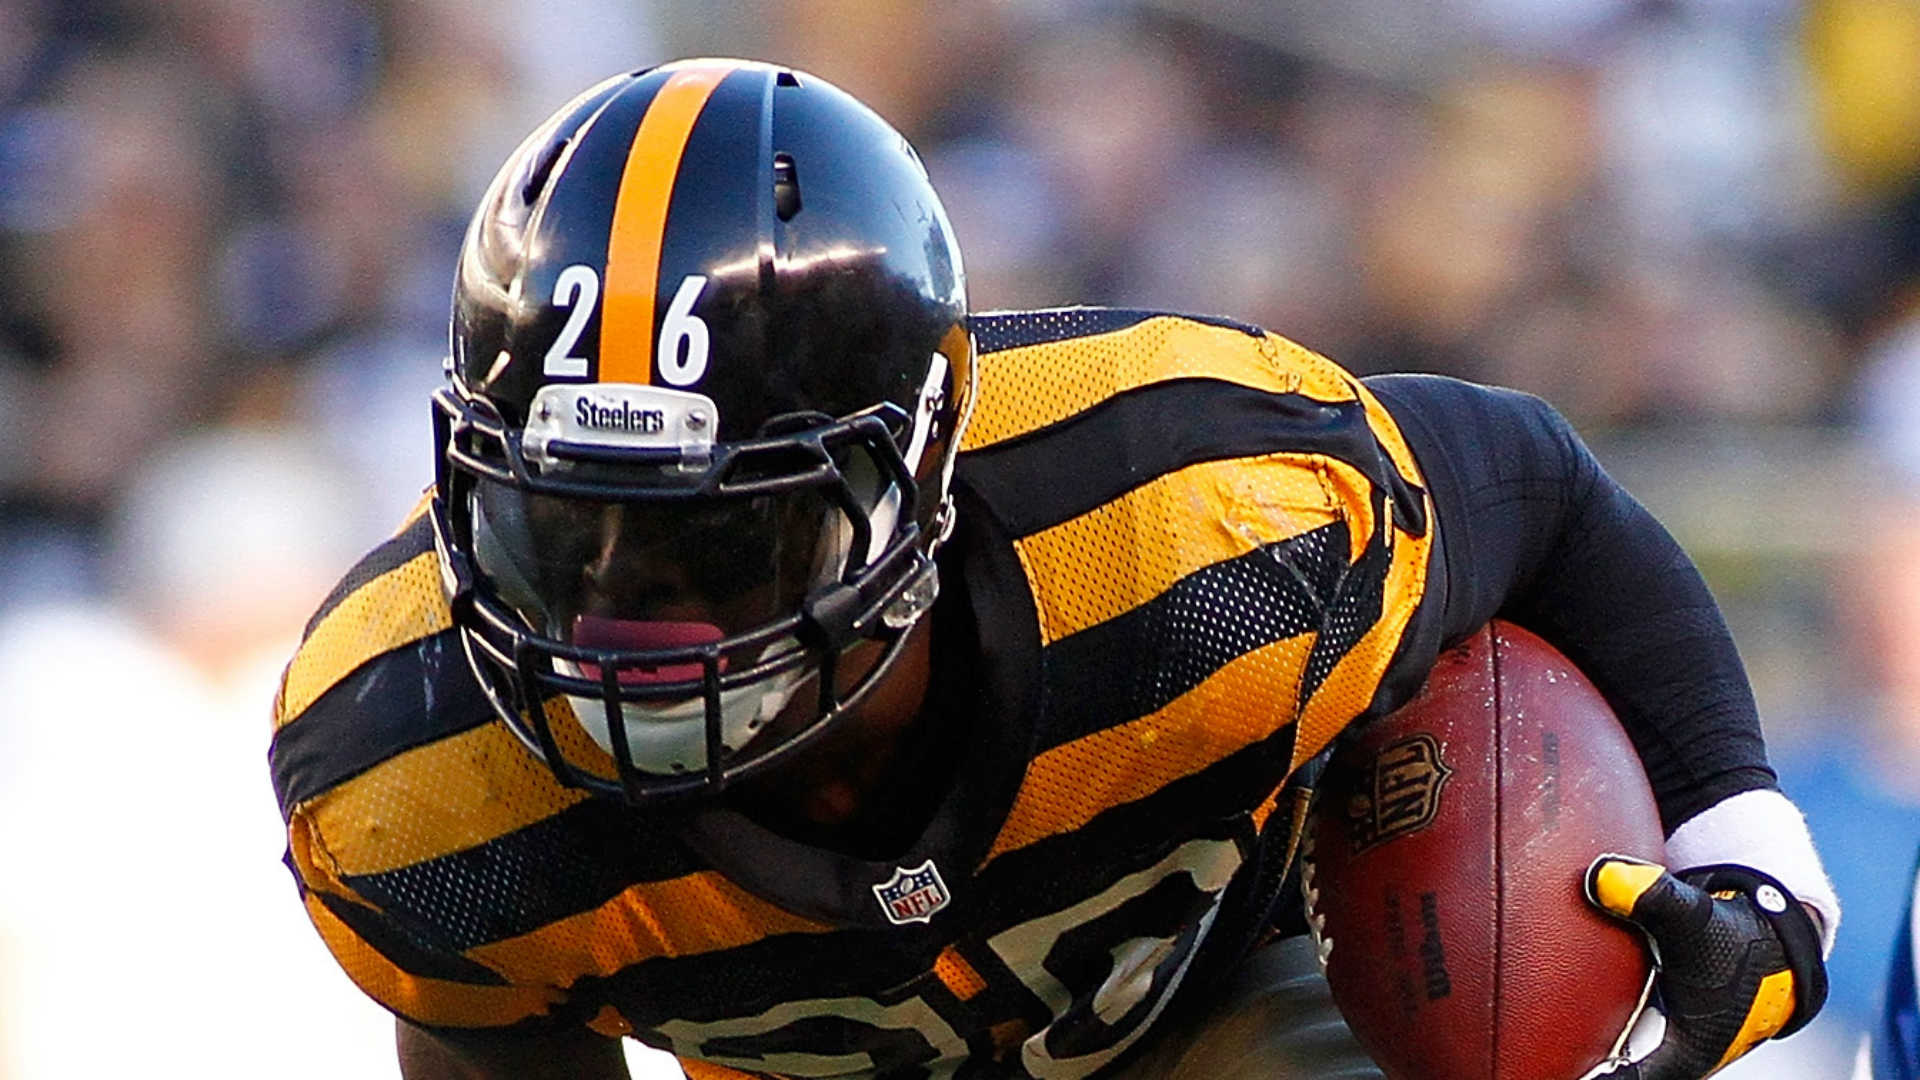 Steelers' Le'Veon Bell vows to come back stronger after groin surgery